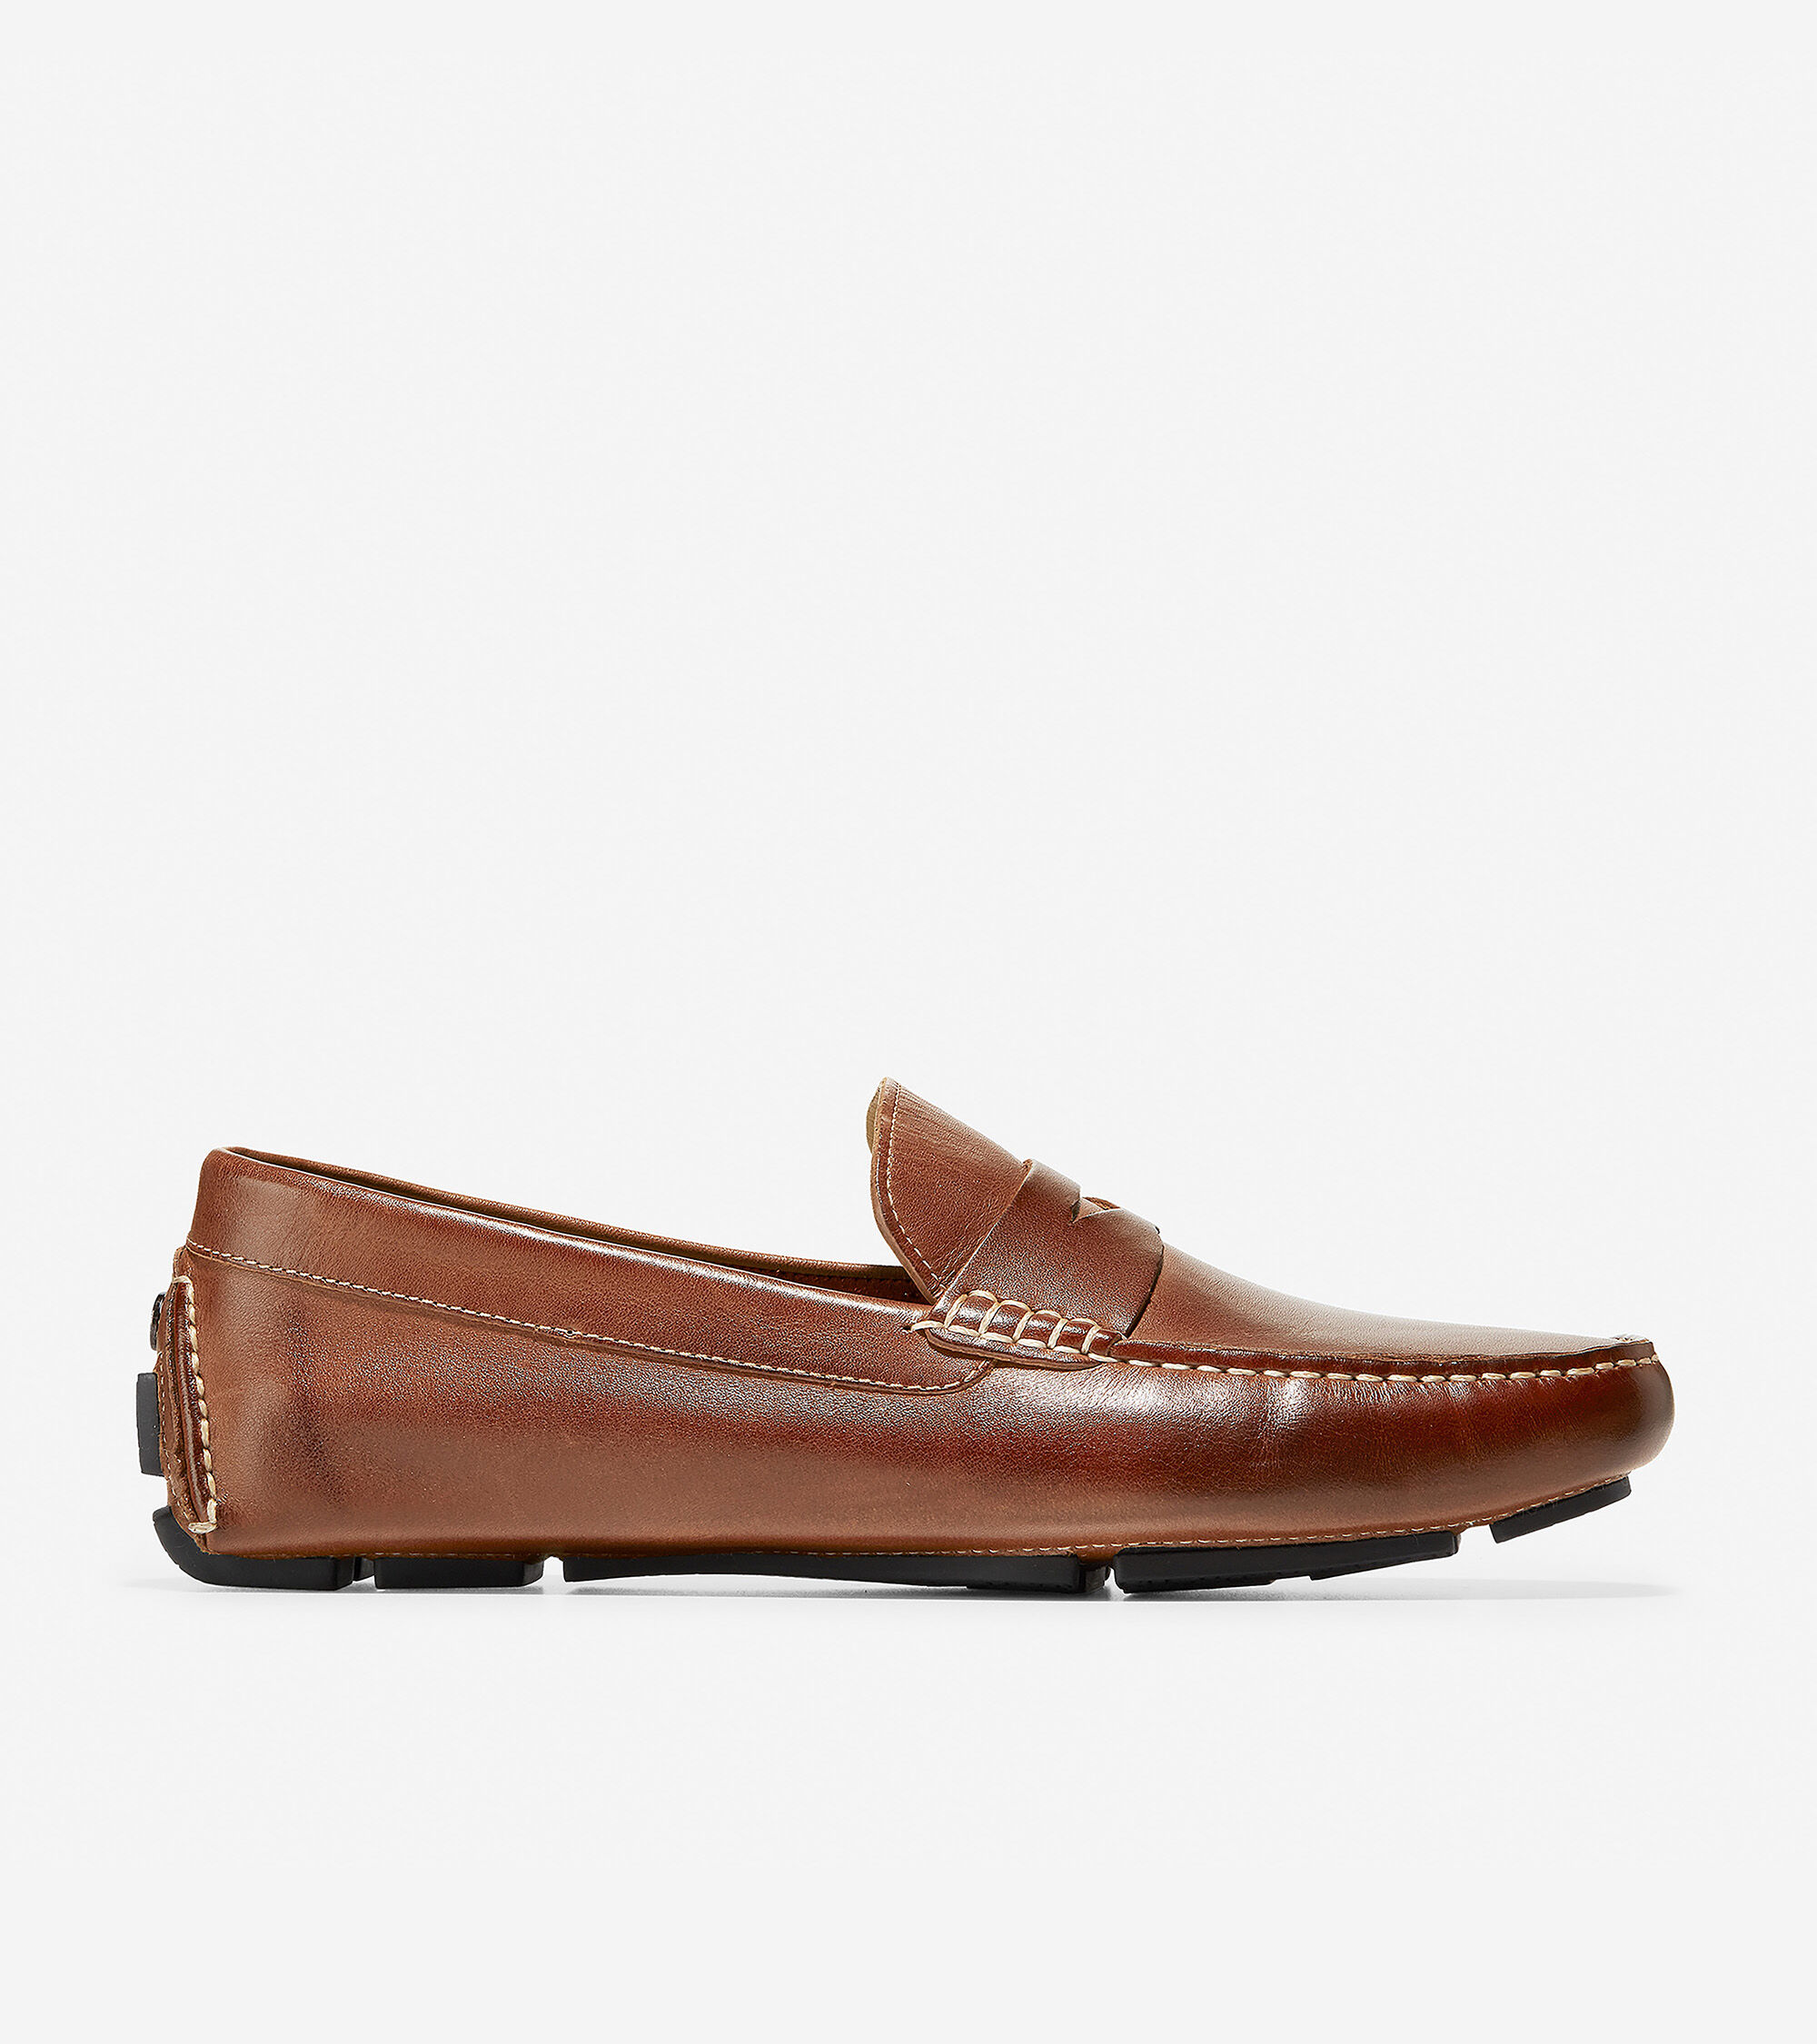 0ca5e6bc38c1 Howland Penny in Saddle Tan   Mens Shoes